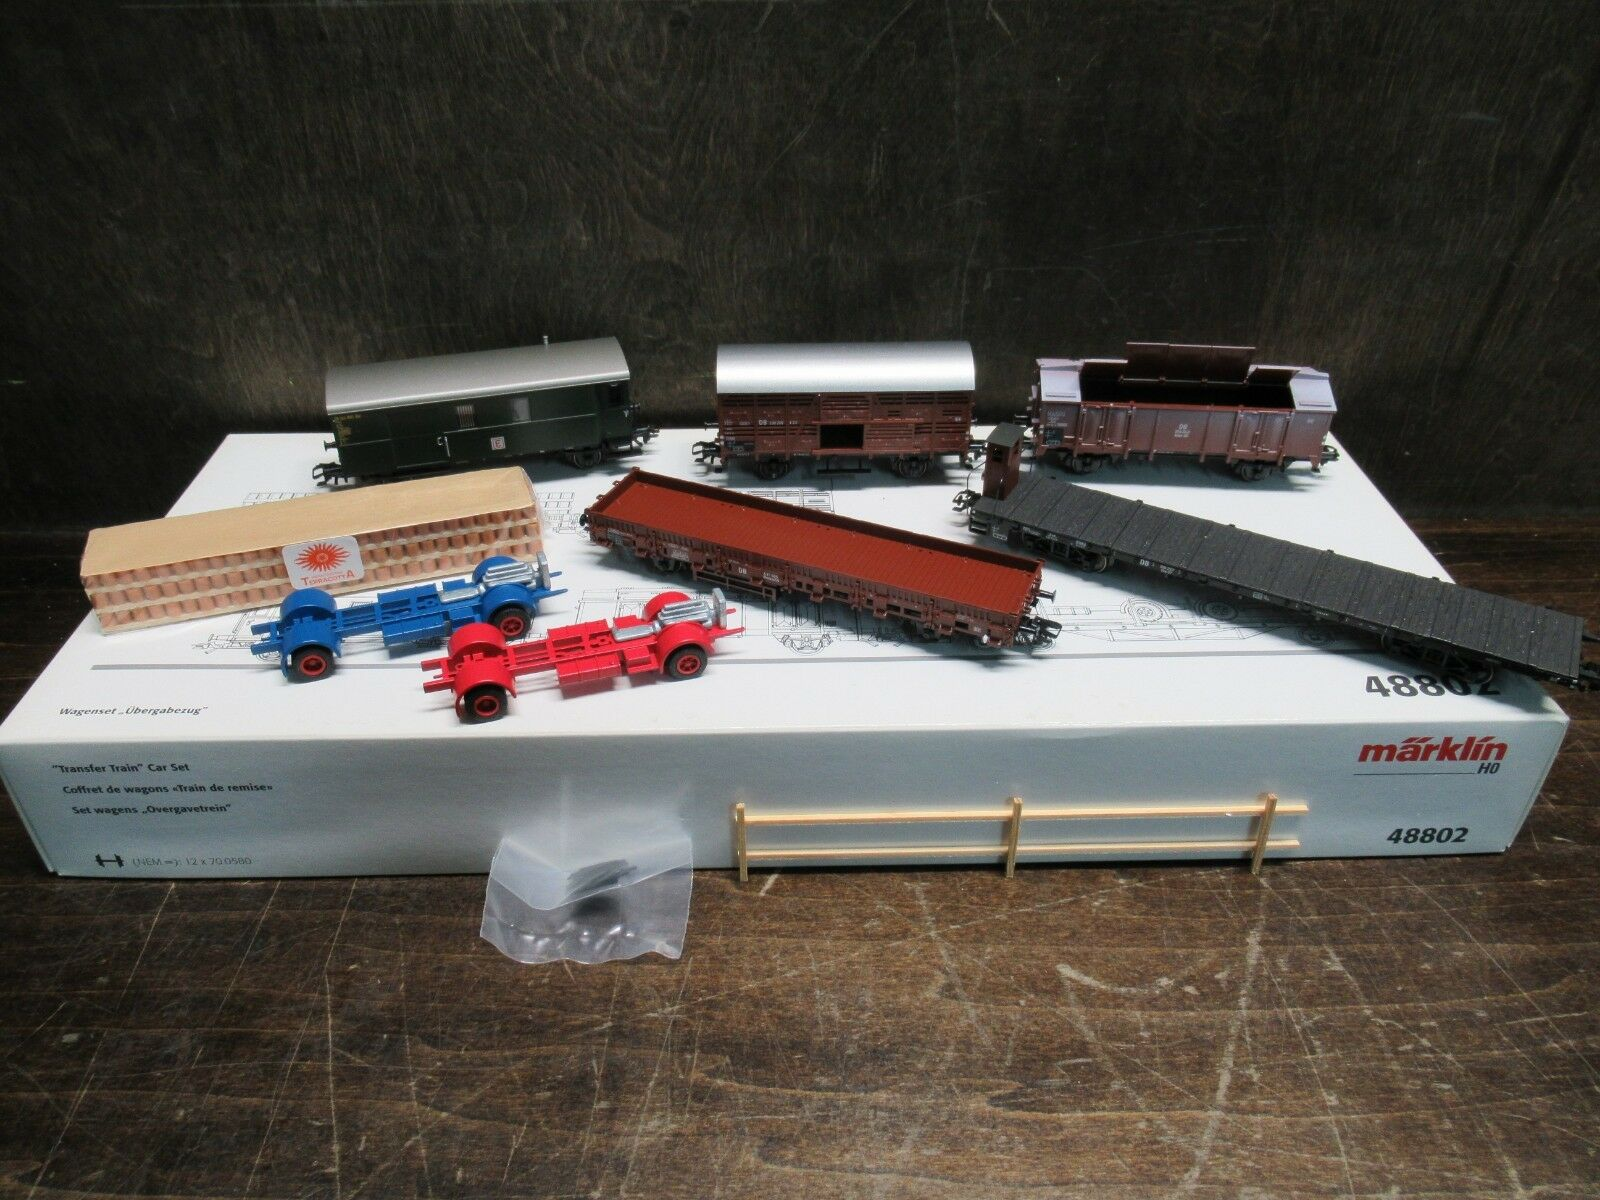 MARKLIN 48802 HO SCALE 'TRANSFER TRAIN' CAR SET PRE-OWNED FREE SHIPPING